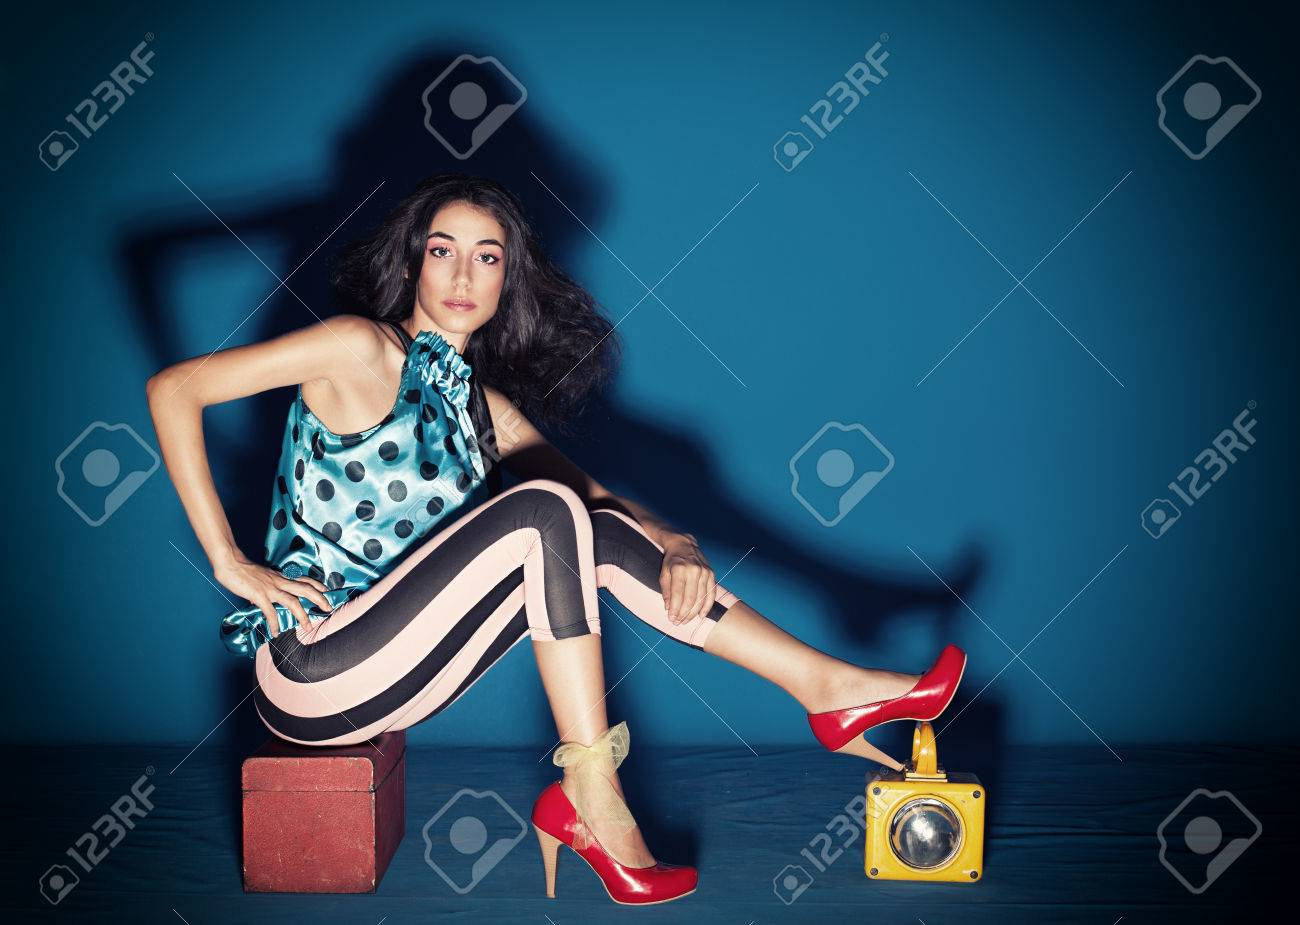 beautiful young model with colorful clothes posing on blue background Stock Photo - 24962455